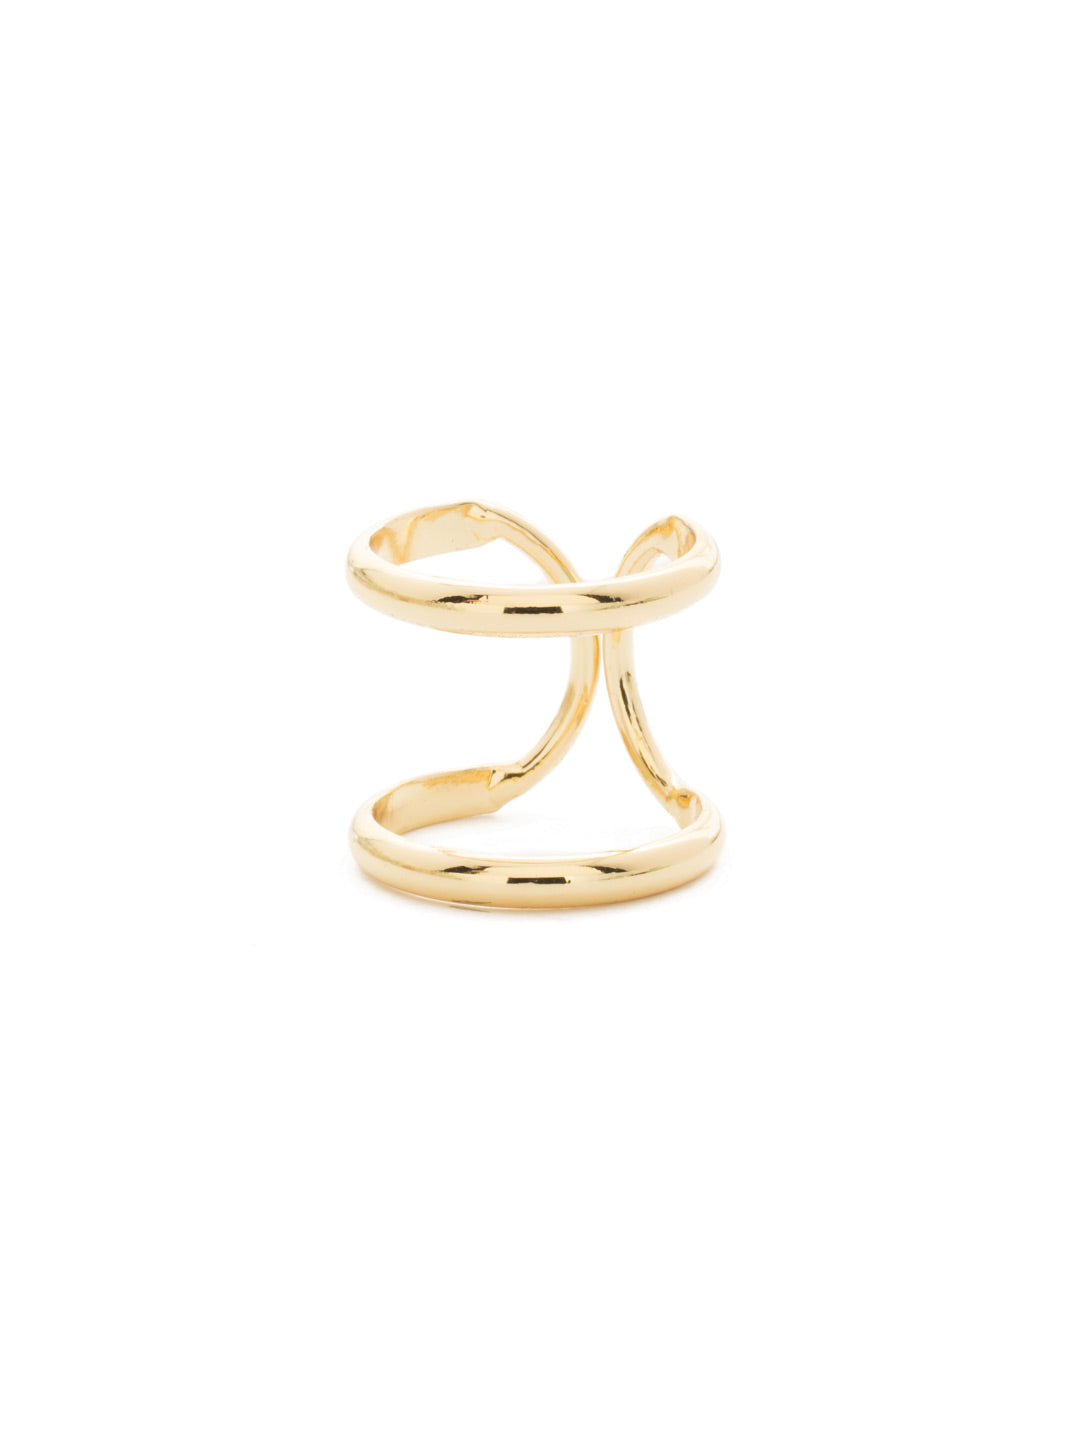 Running In Circles Stacked Ring - RDW3BGCRY